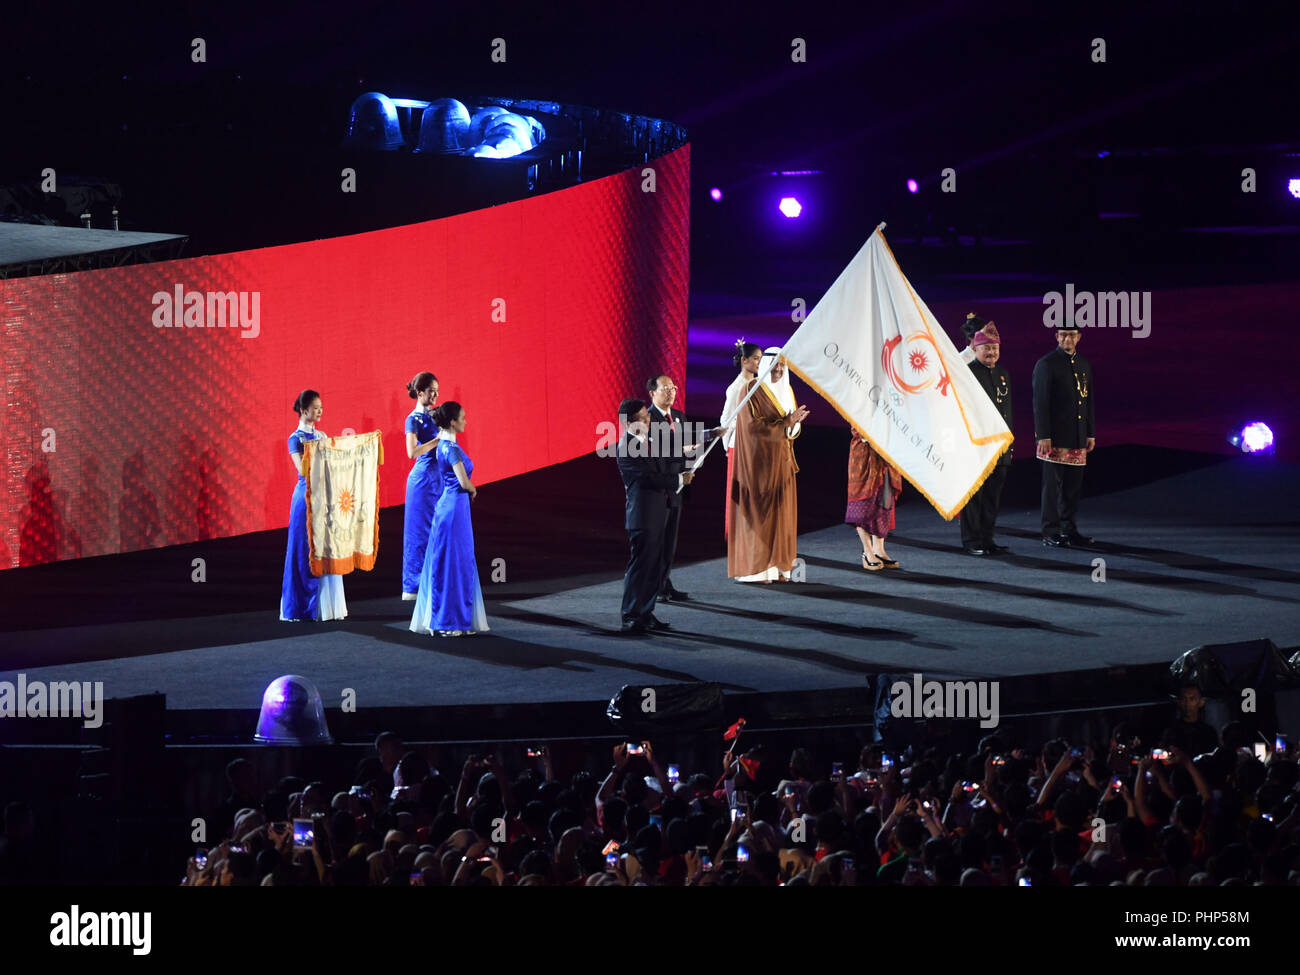 (180902) -- JAKARTA, Sept. 2, 2018 (Xinhua) -- Photo taken on Sept. 2, 2018 shows the handover ceremony of the flag of Olympic Council of Asia (OCA) during the closing ceremony of the 18th Asian Games at the Gelora Bung Karno (GBK) Main Stadium in Jakarta, Indonesia. (Xinhua/Pan Yulong) Stock Photo